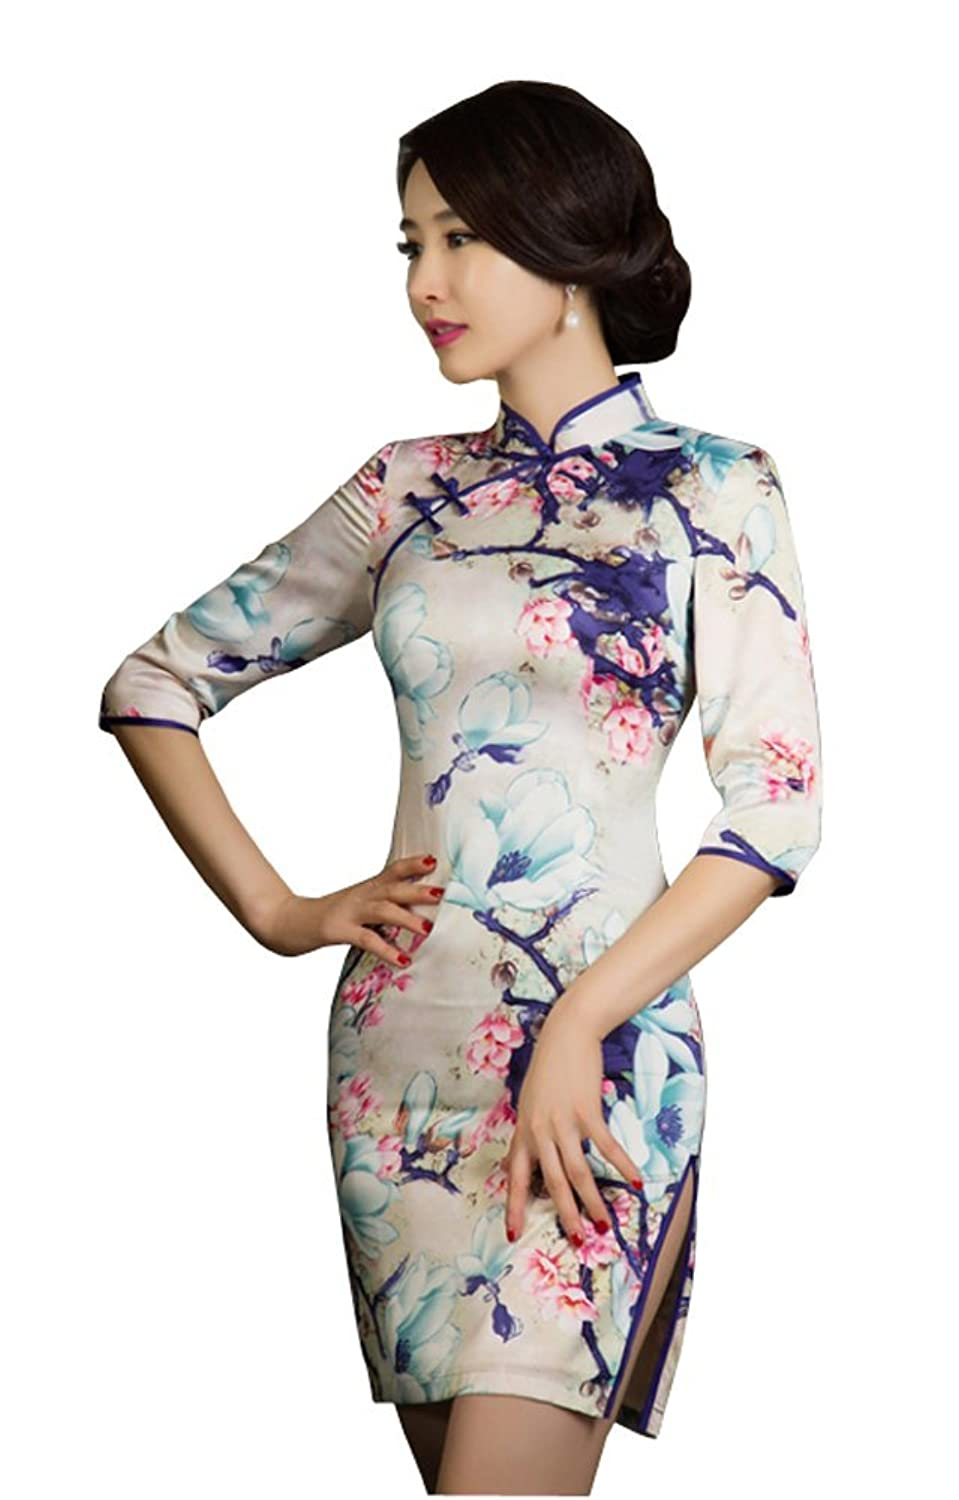 Angcoco Women's Half Sleeve Chinese Traditional Mini Cheongsam Dress